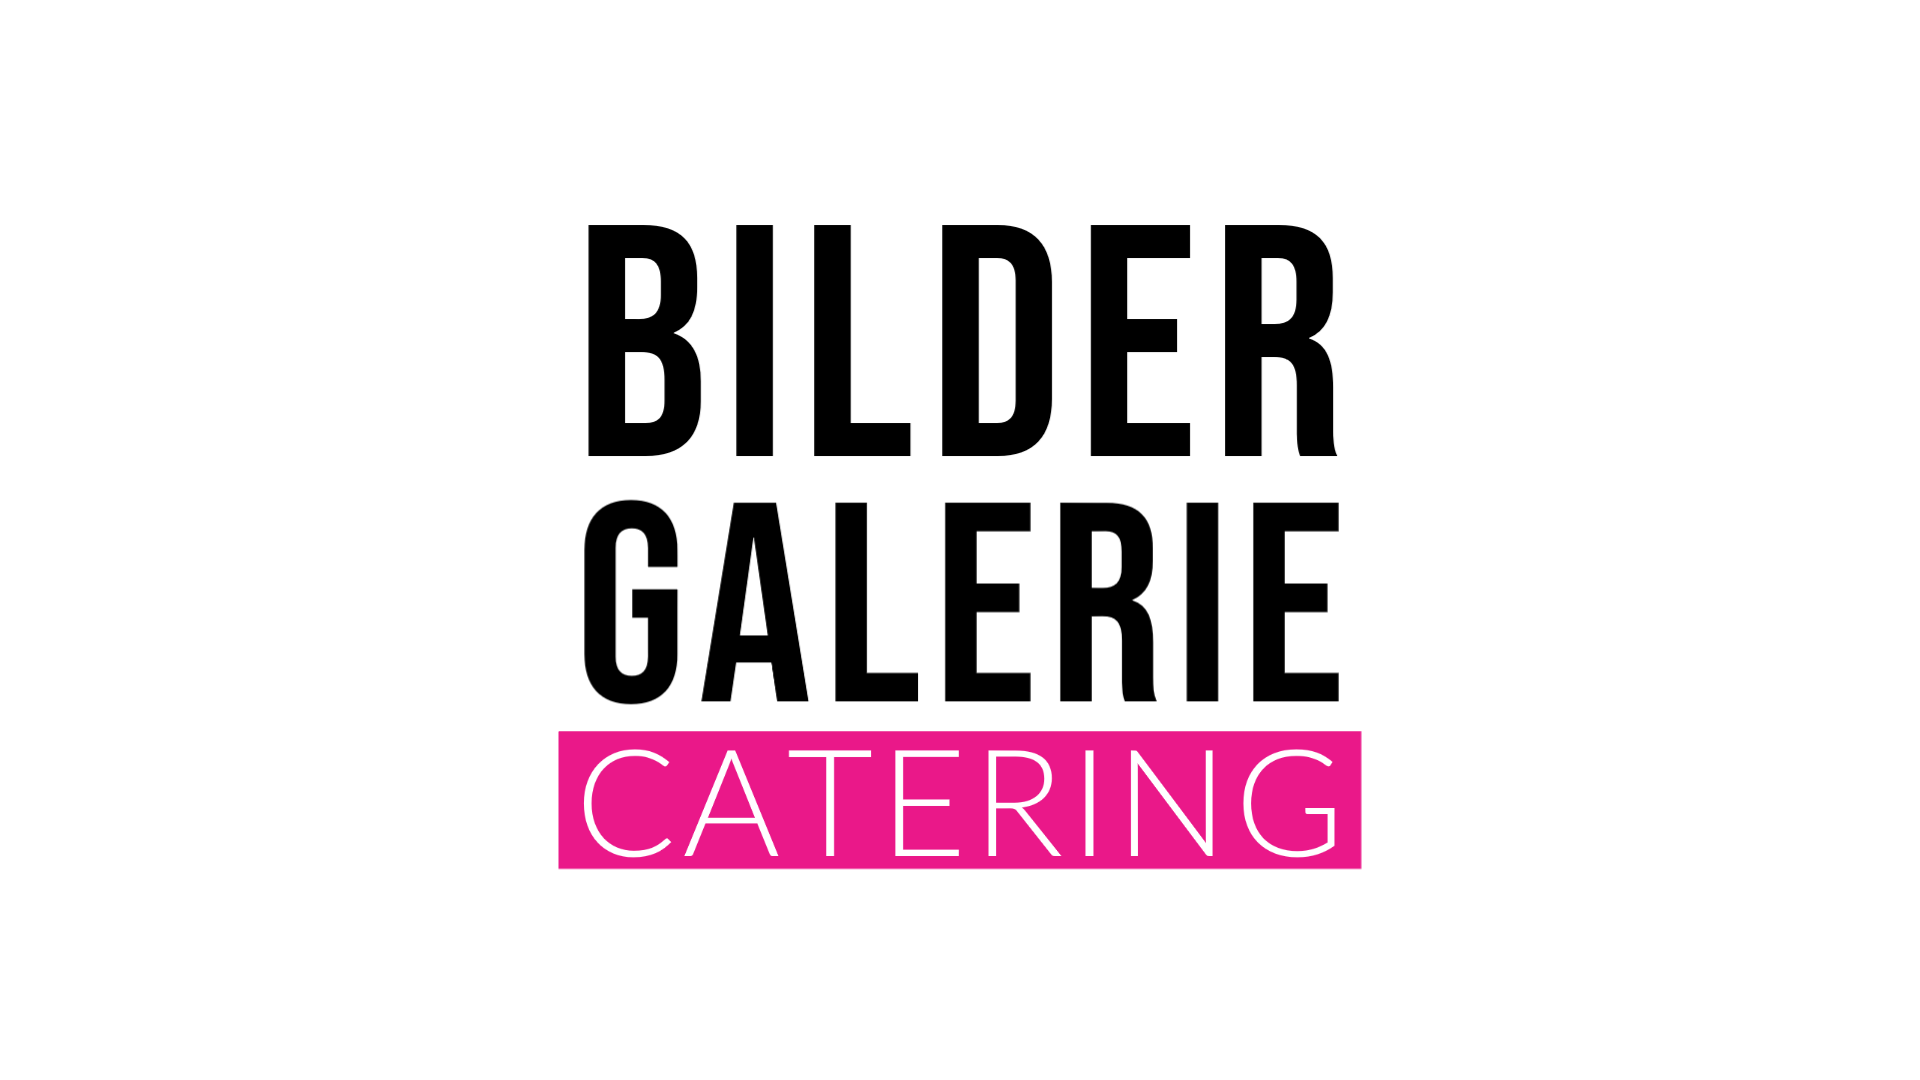 Gallery Catering Angela Carnelutti